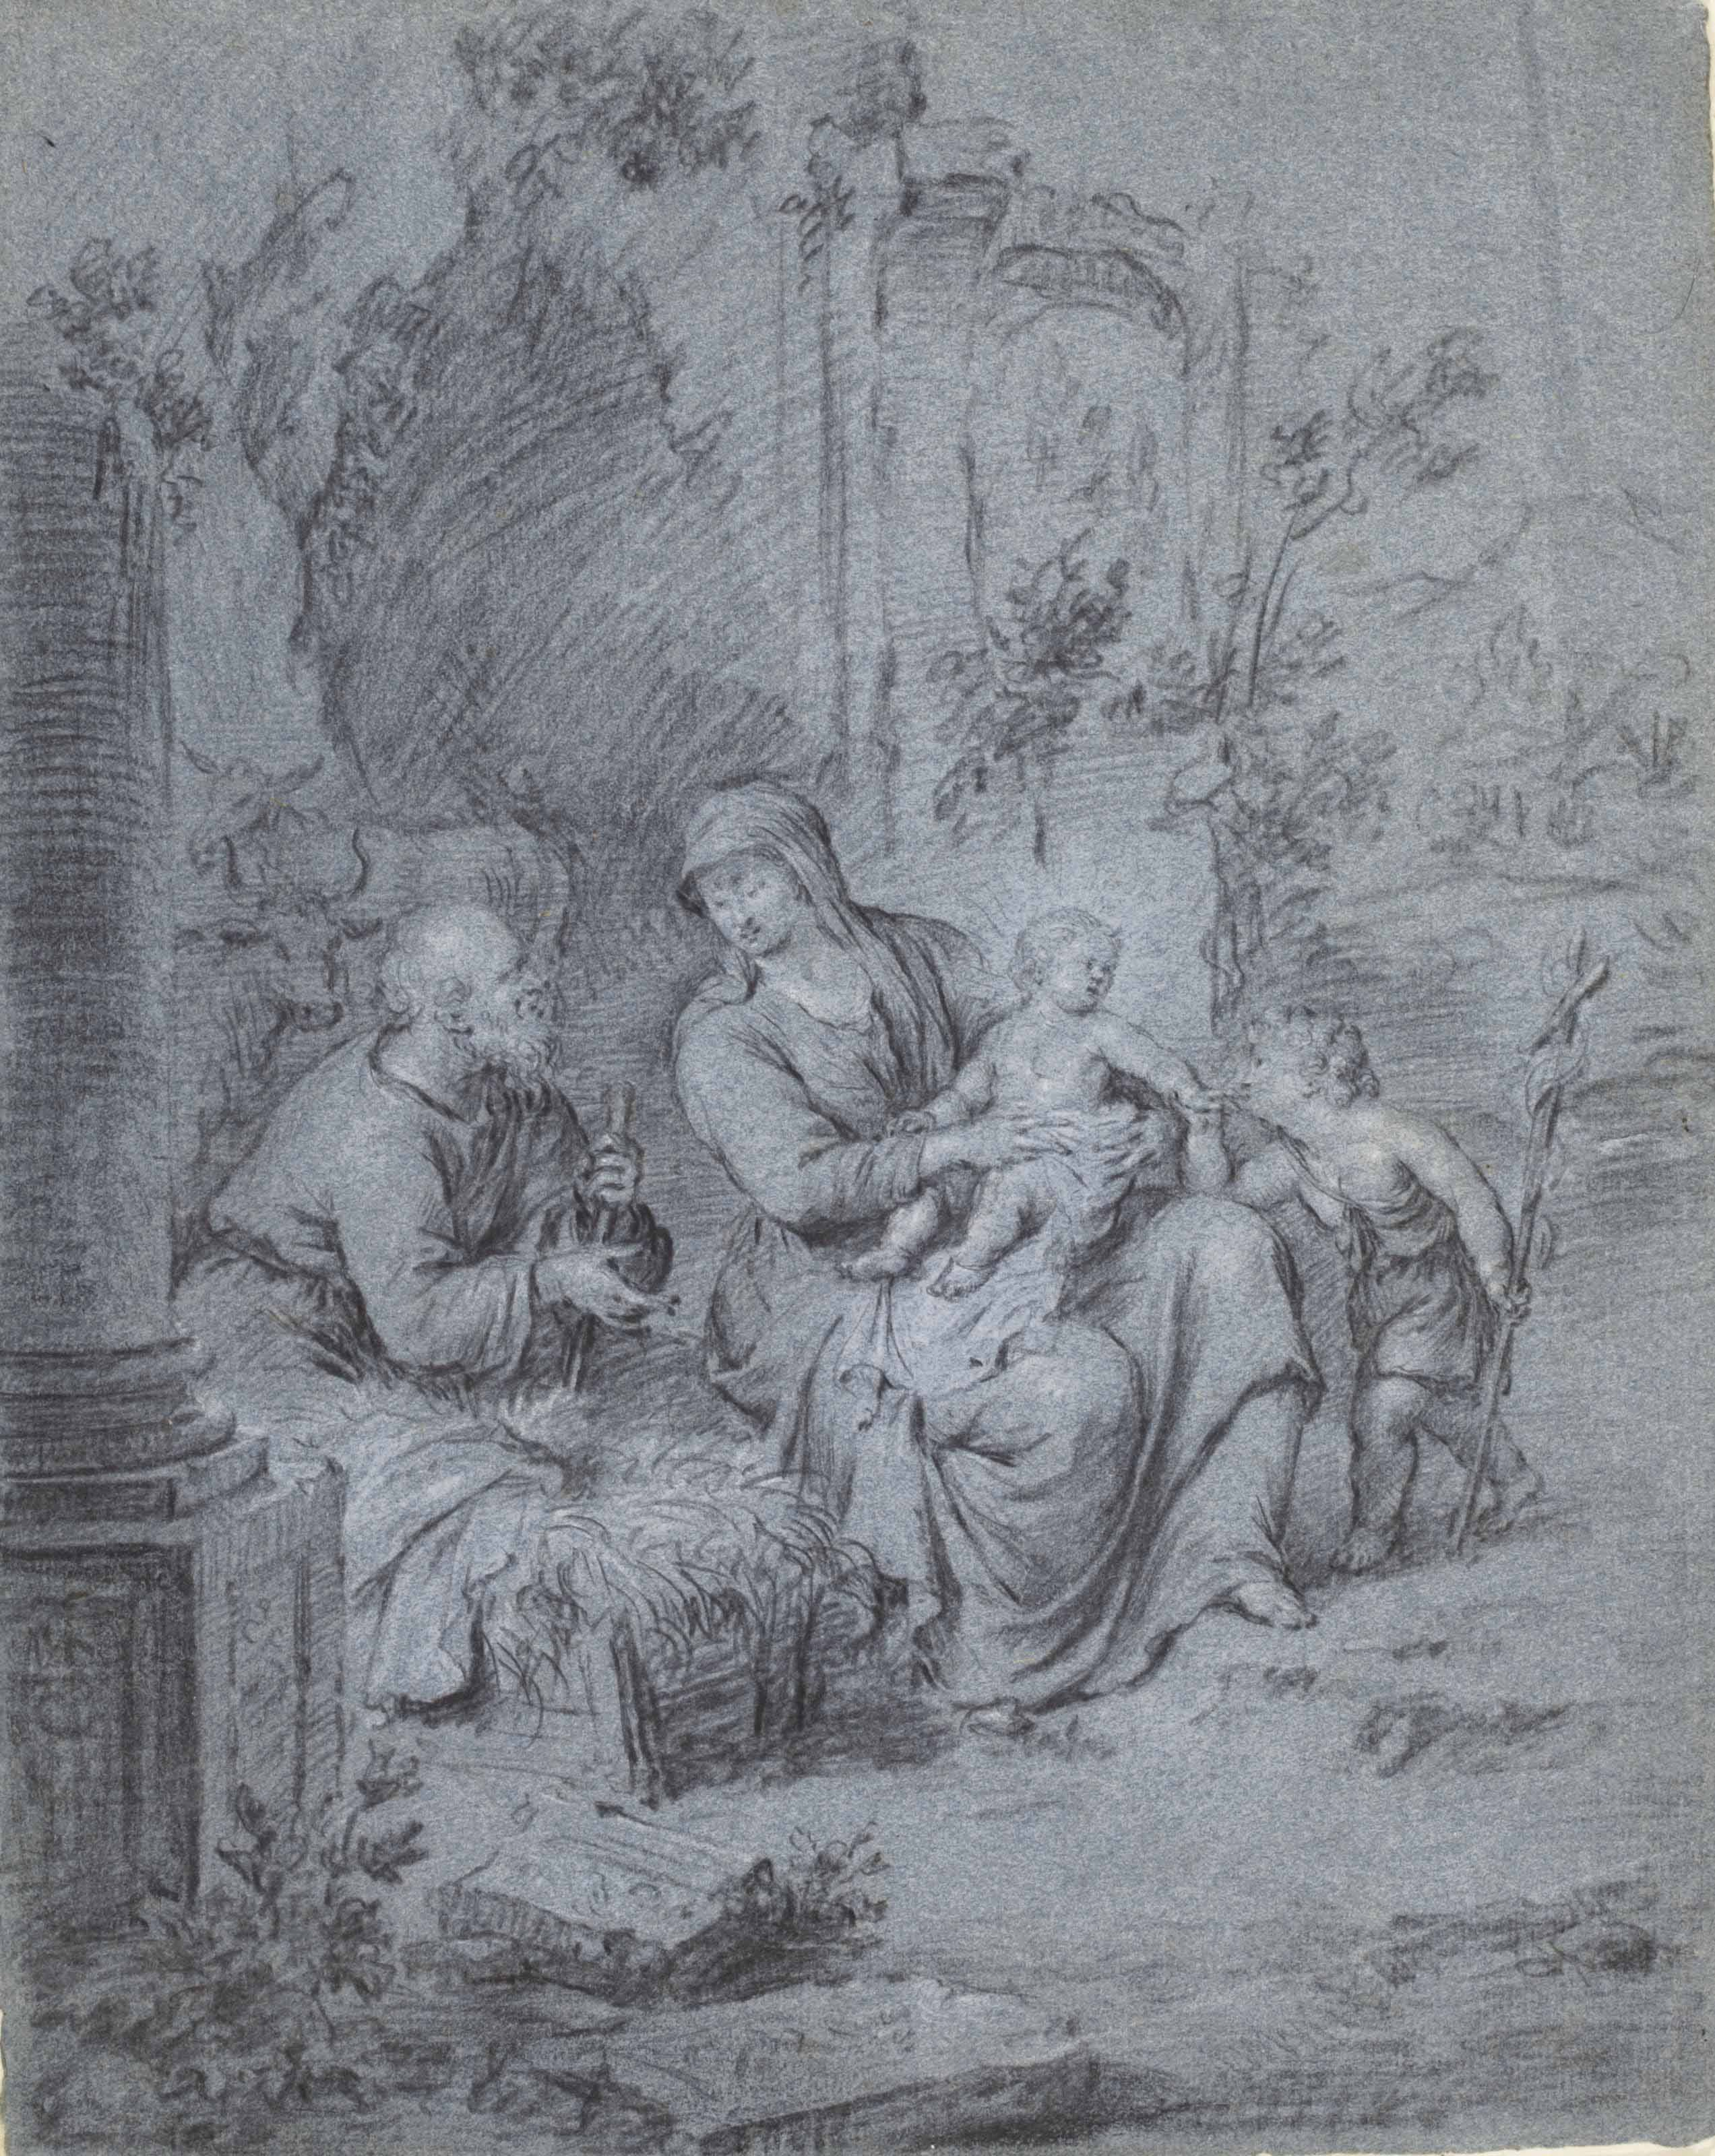 The Holy Family with the Infant Baptist among ruins